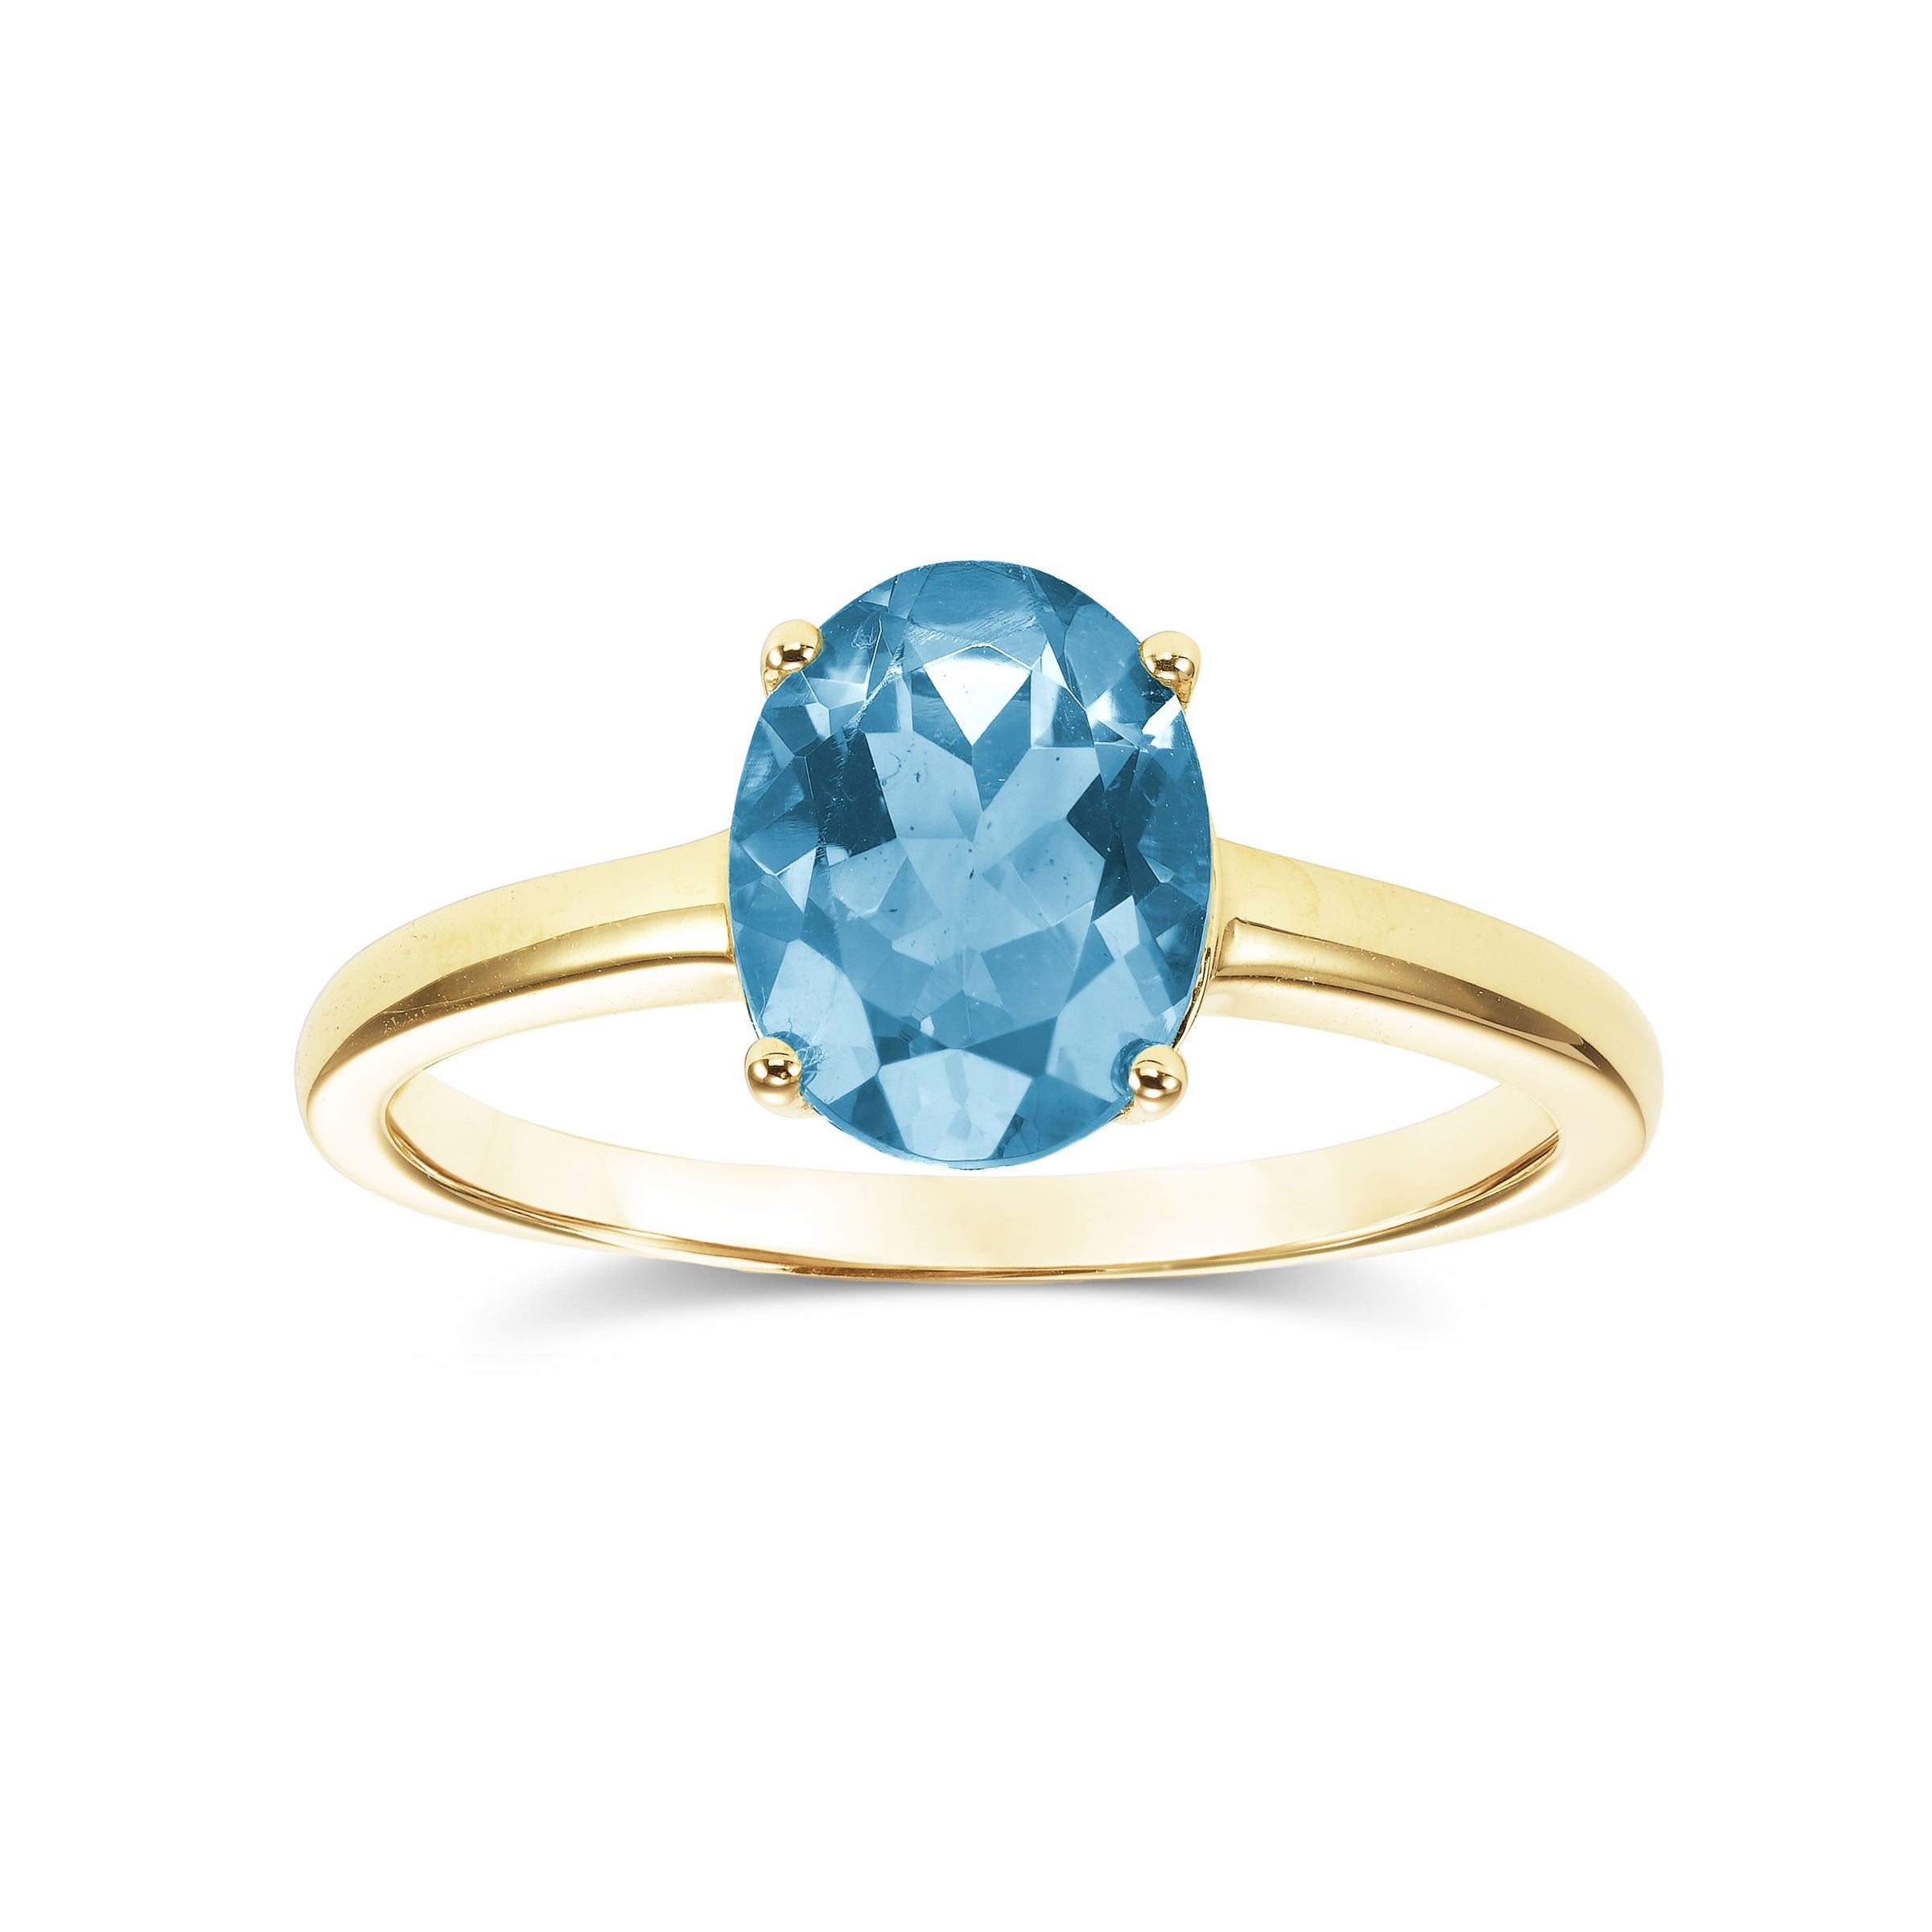 Oval Cut Blue Topaz Ring, 14K Yellow Gold